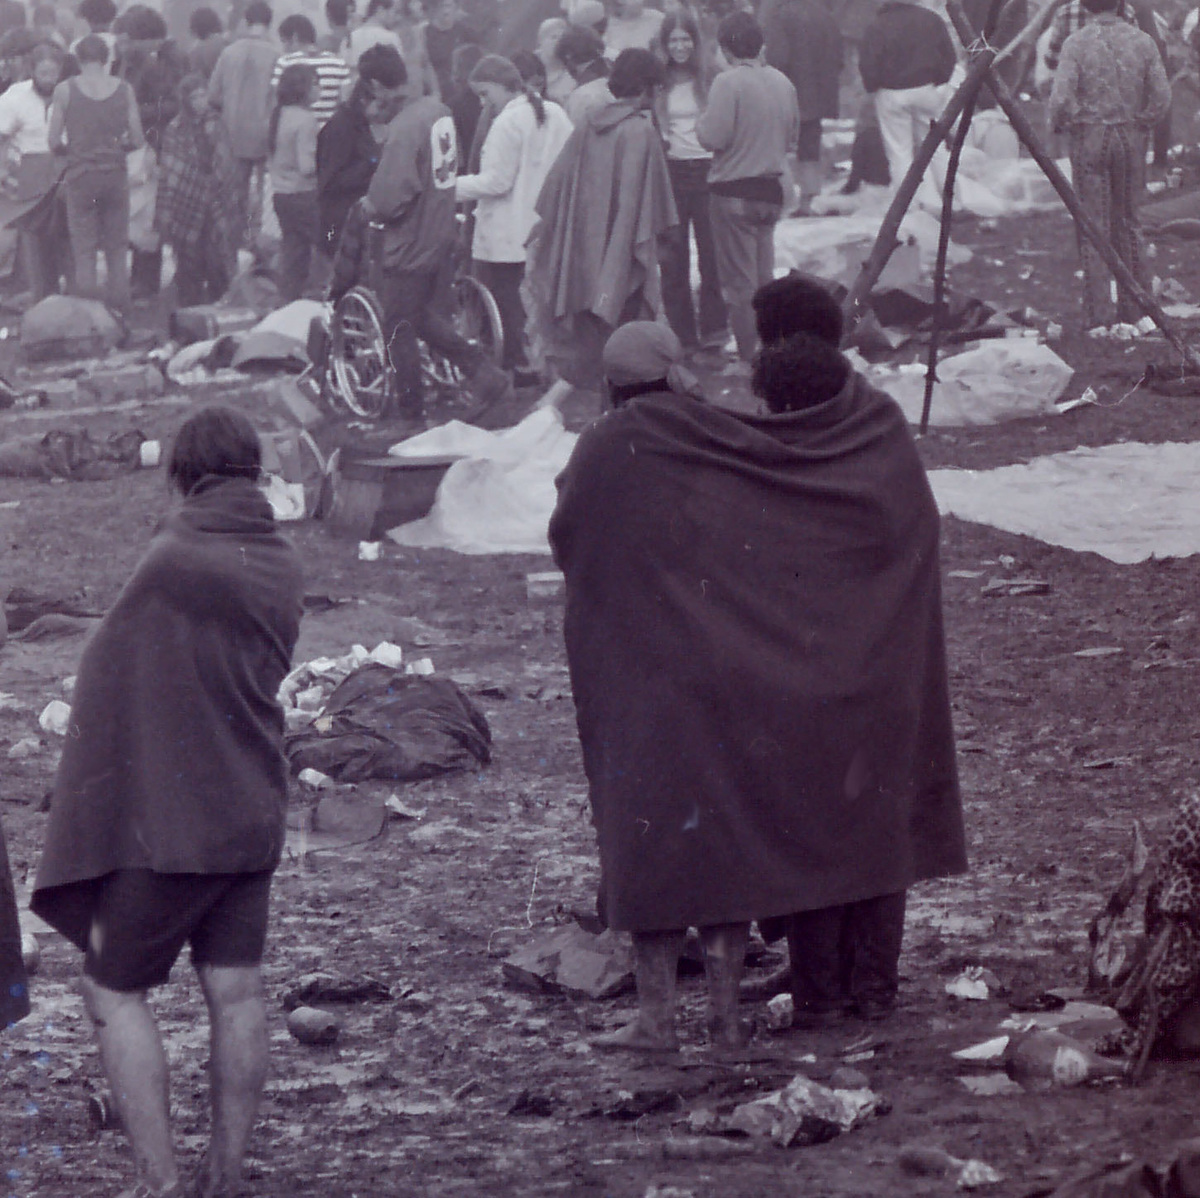 people enjoying woodstock in the rain and mud